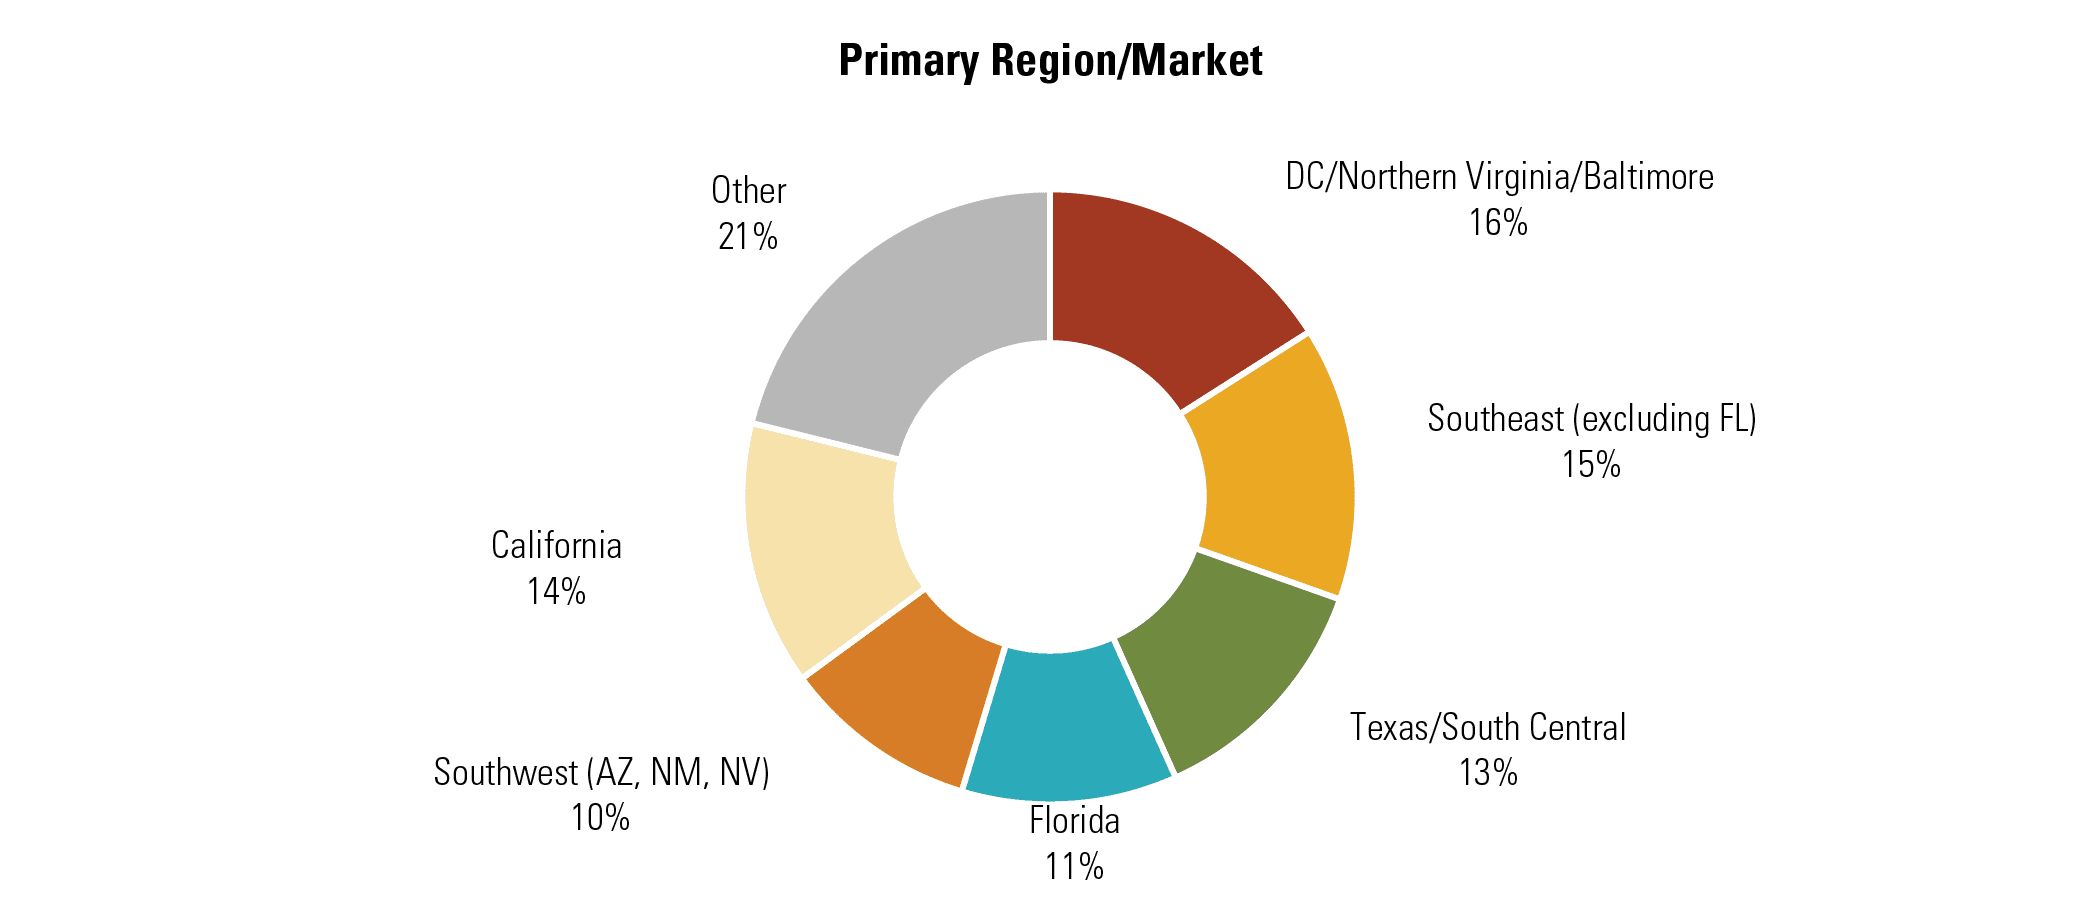 Primary Region/Market